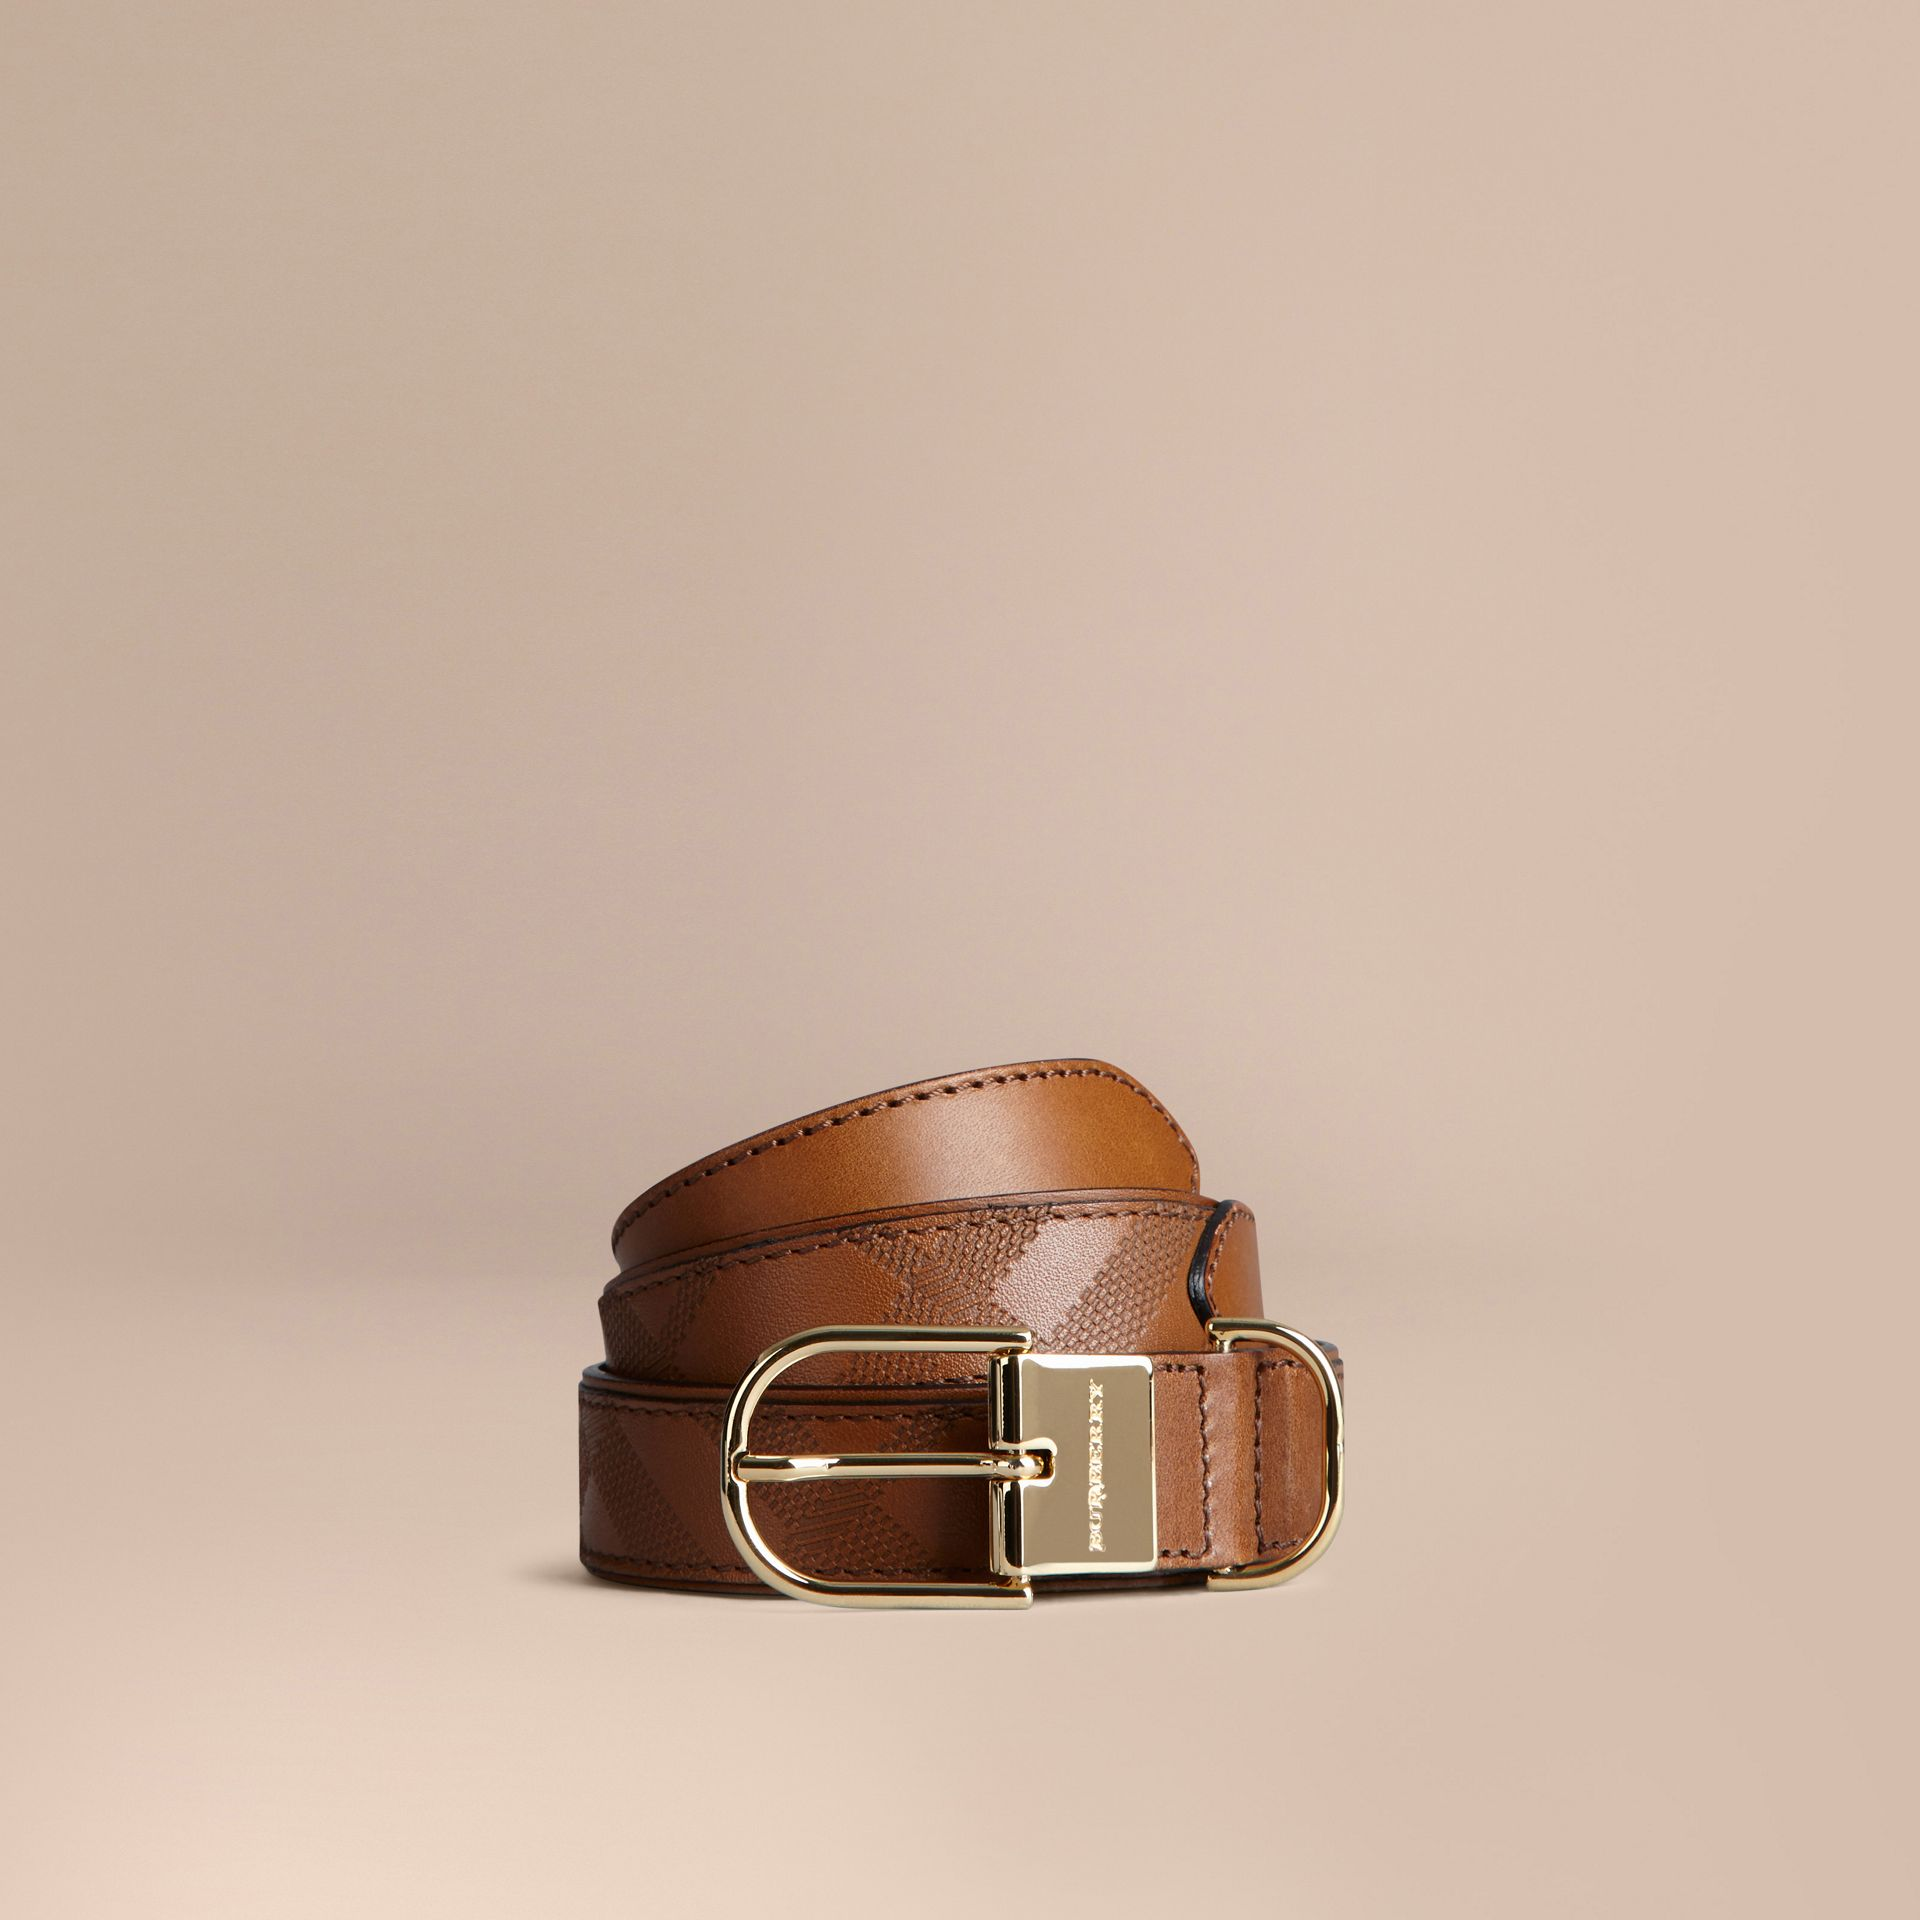 Tan Embossed Check London Leather Belt Tan - gallery image 1